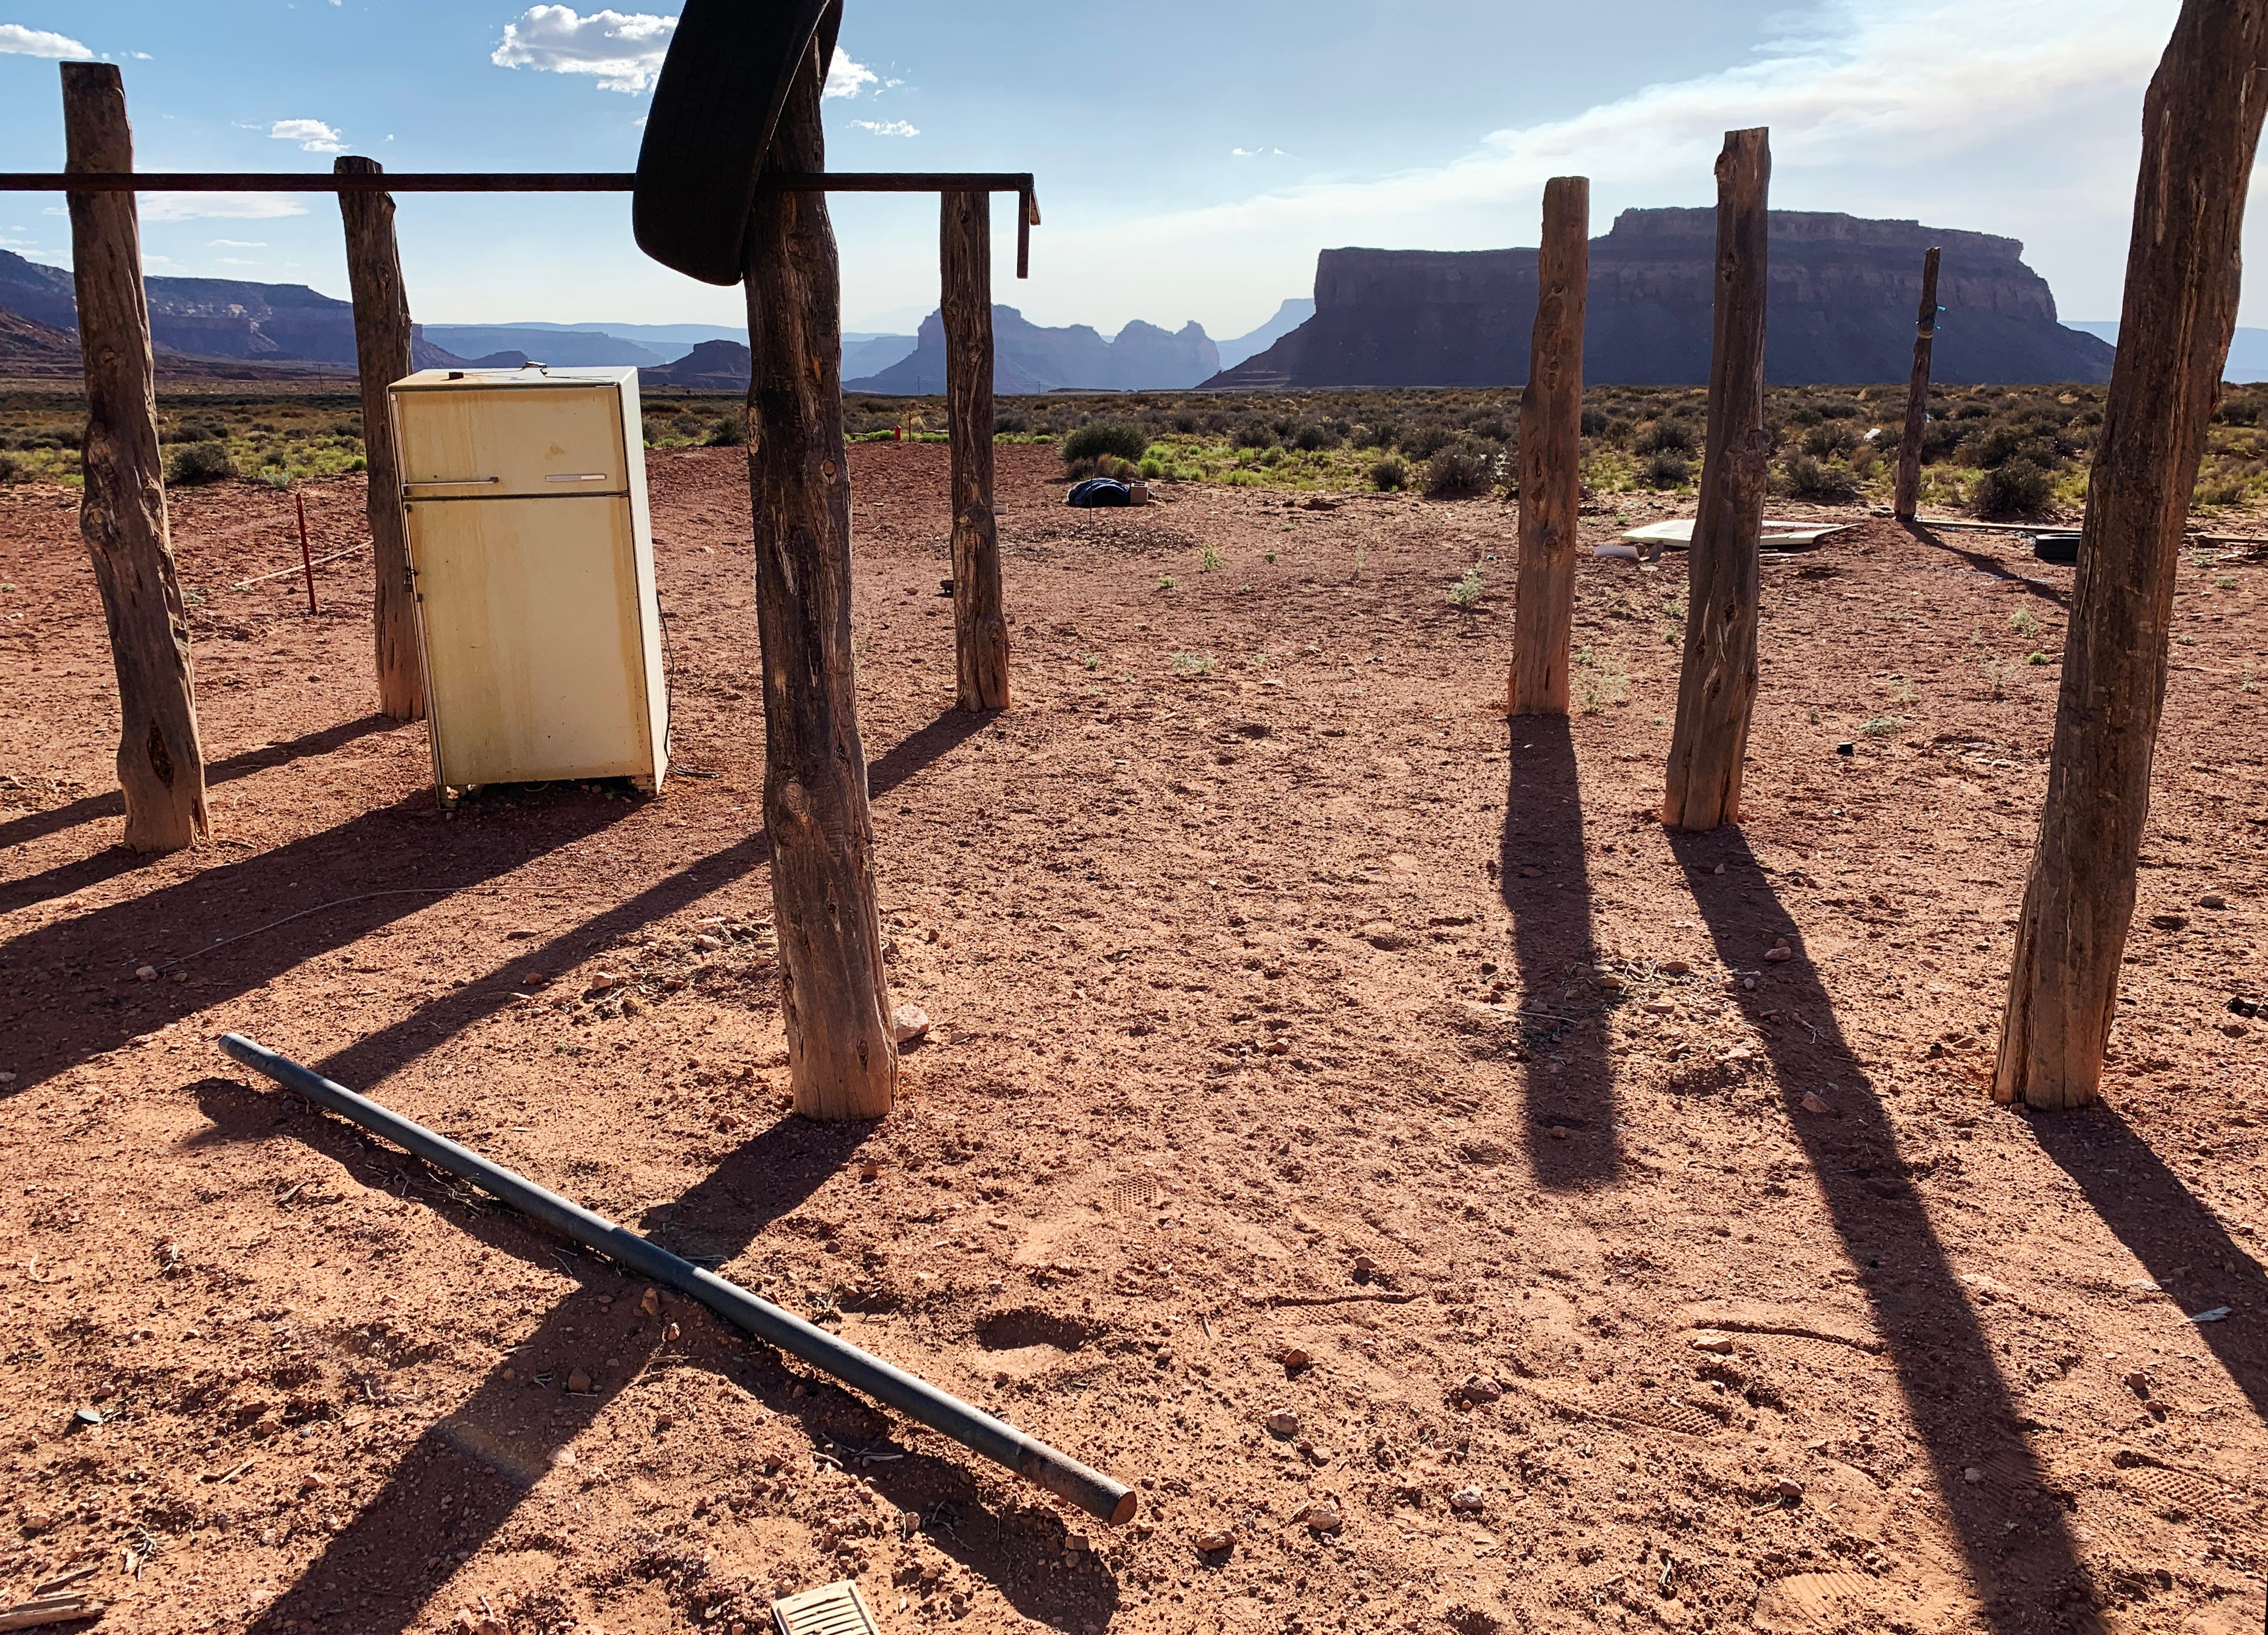 Wood posts cast shadows in Monument Valley on the Navajo Nation, where many people live in homes without running water or electricity.